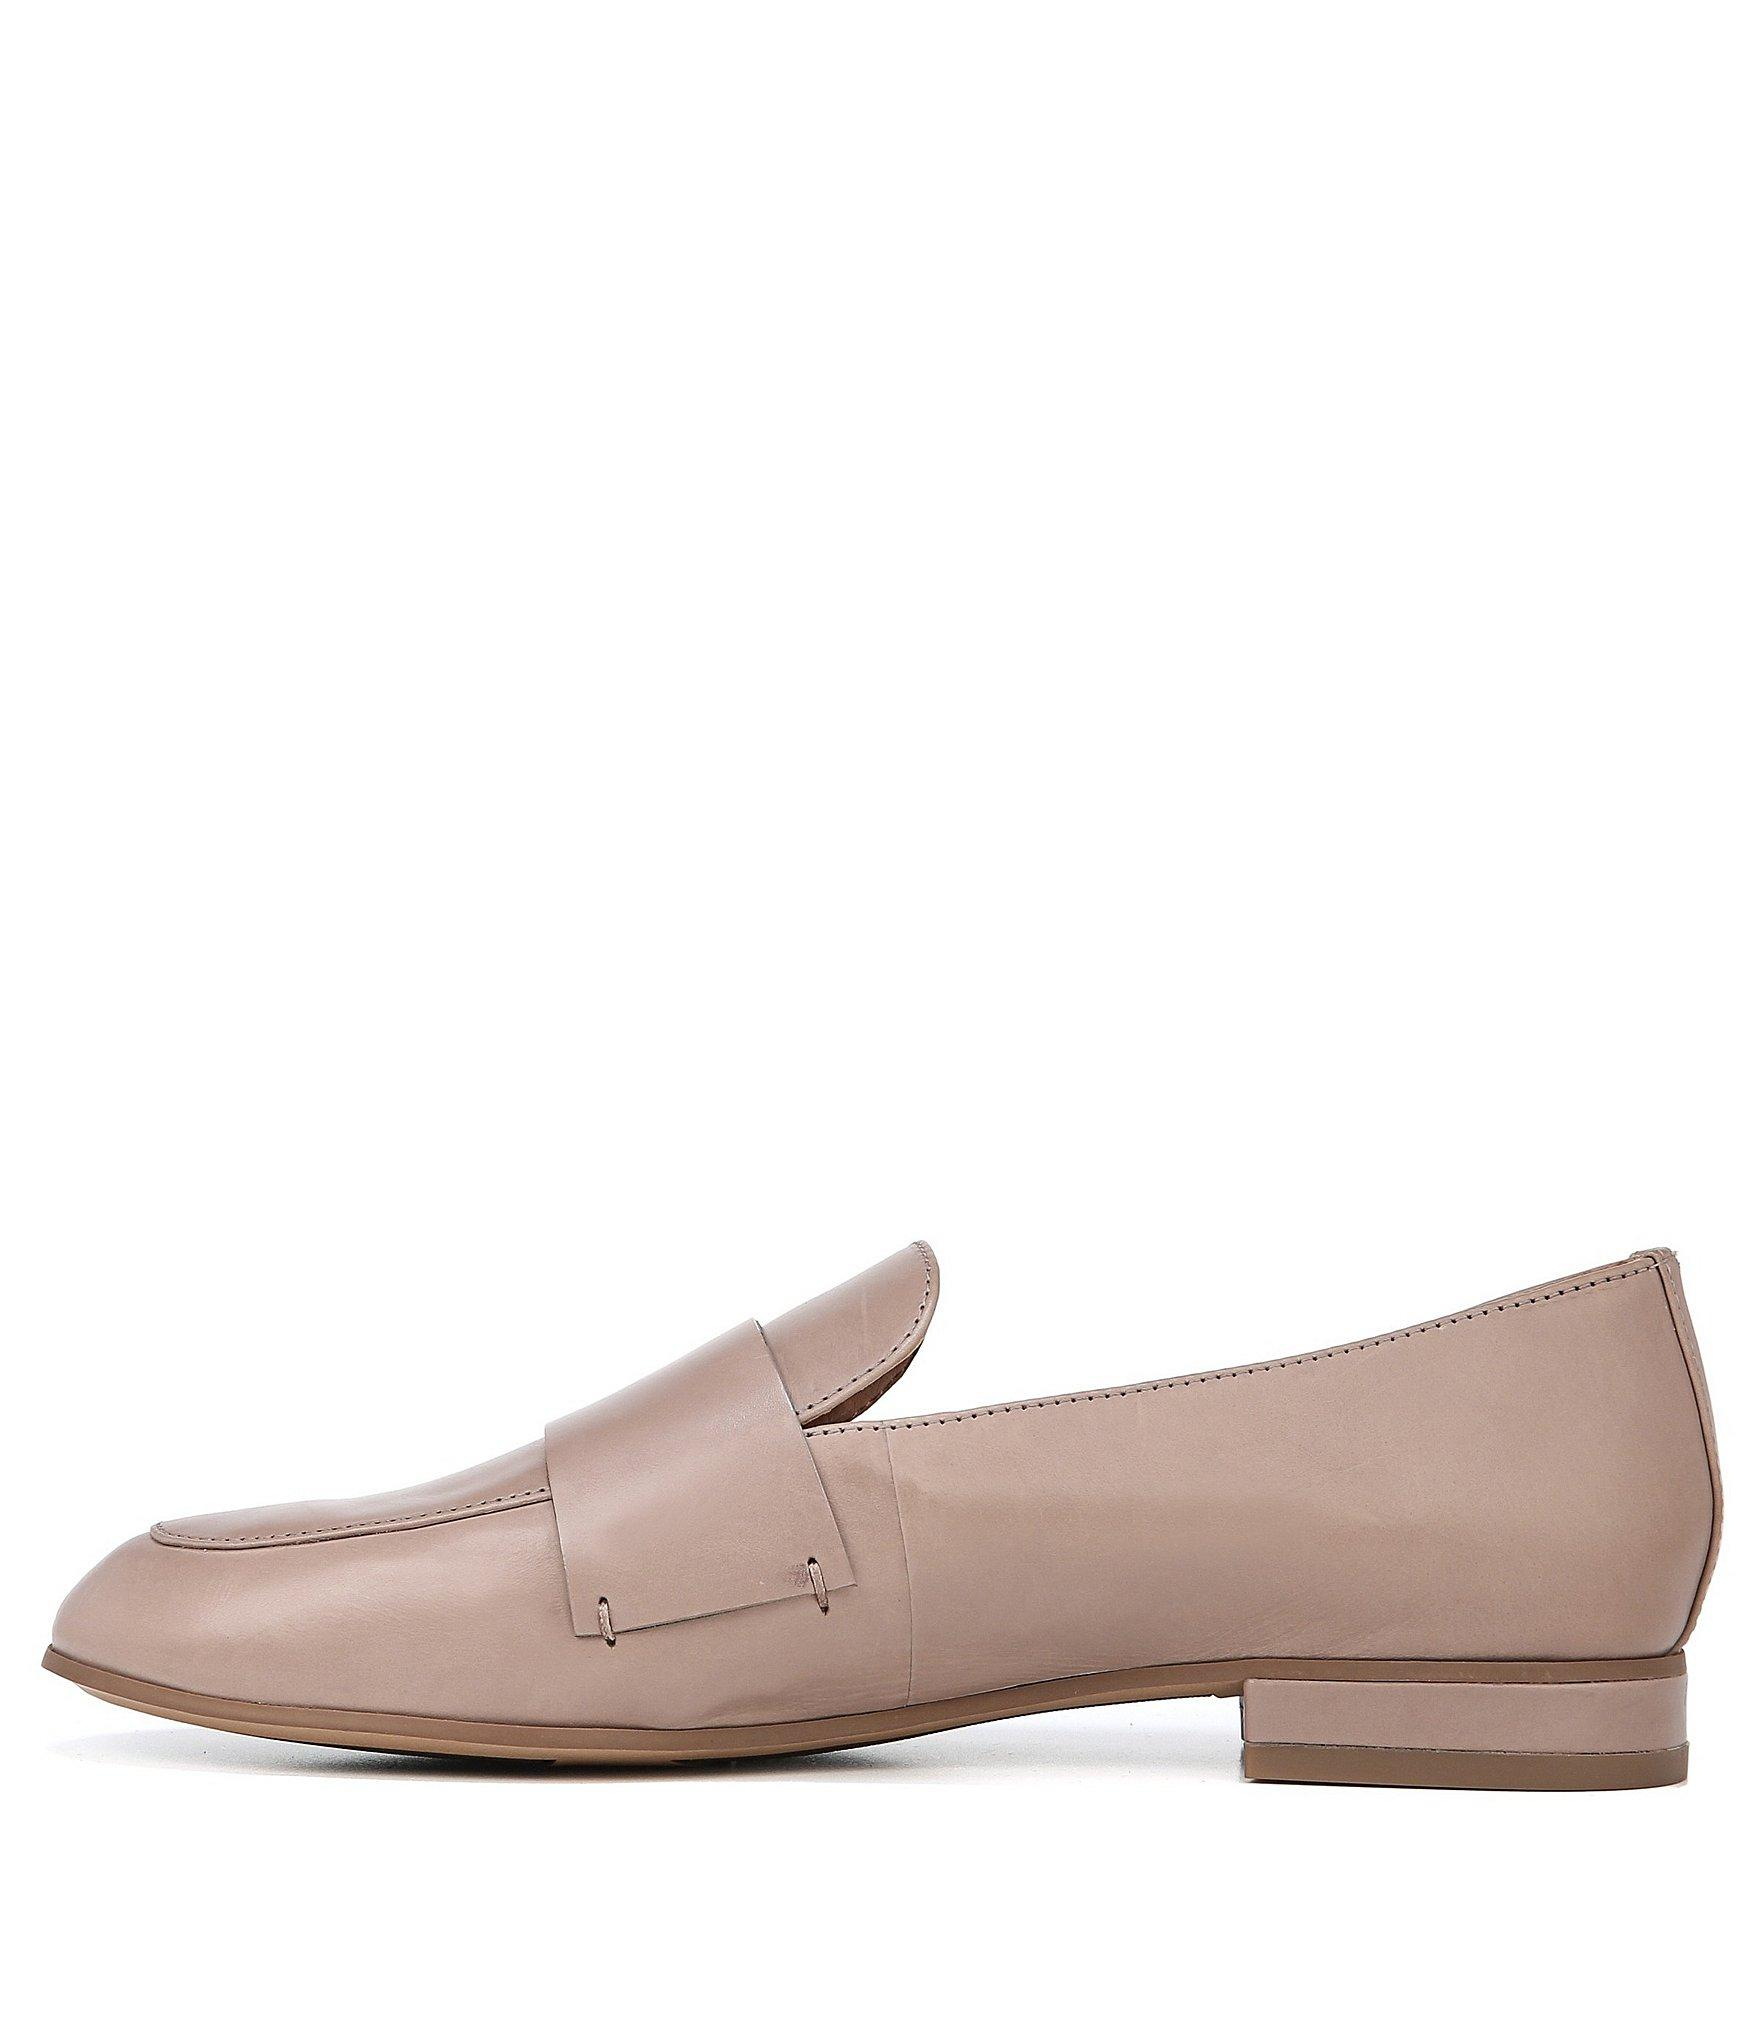 317dc1908f1 Franco Sarto - Multicolor Sarto By Kip Leather Loafers - Lyst. View  fullscreen